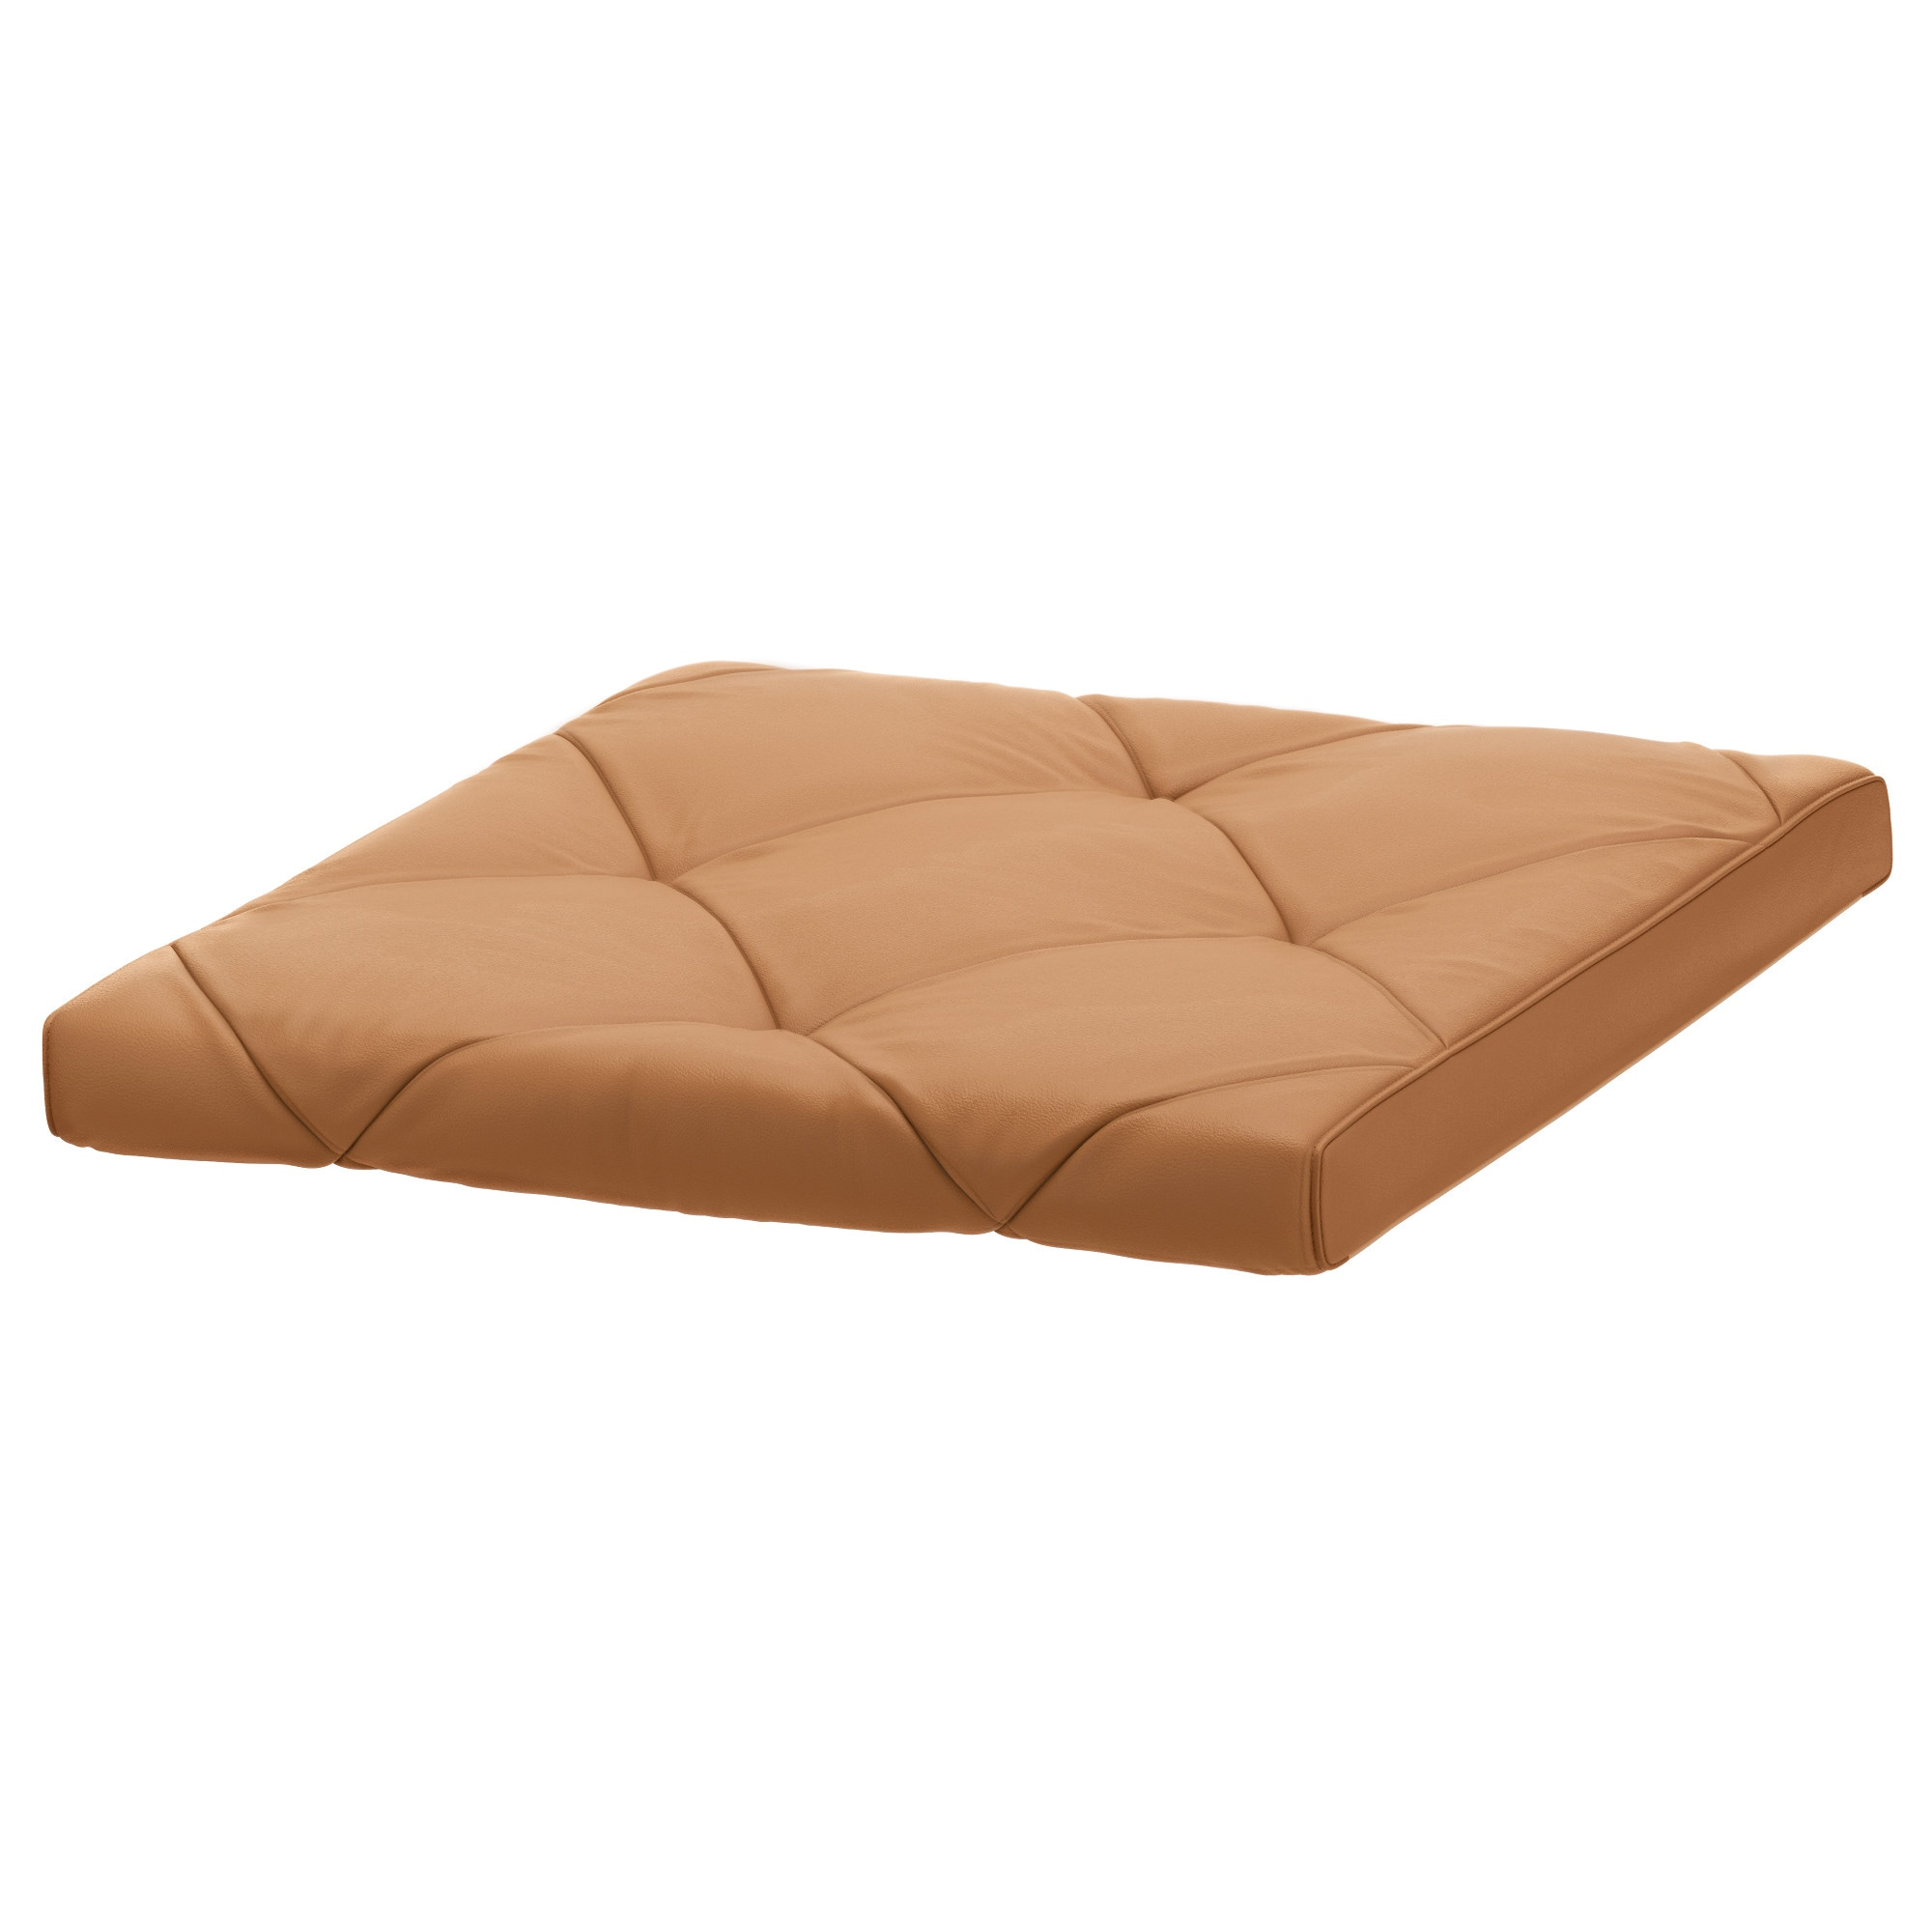 Sofa Covers IKEA